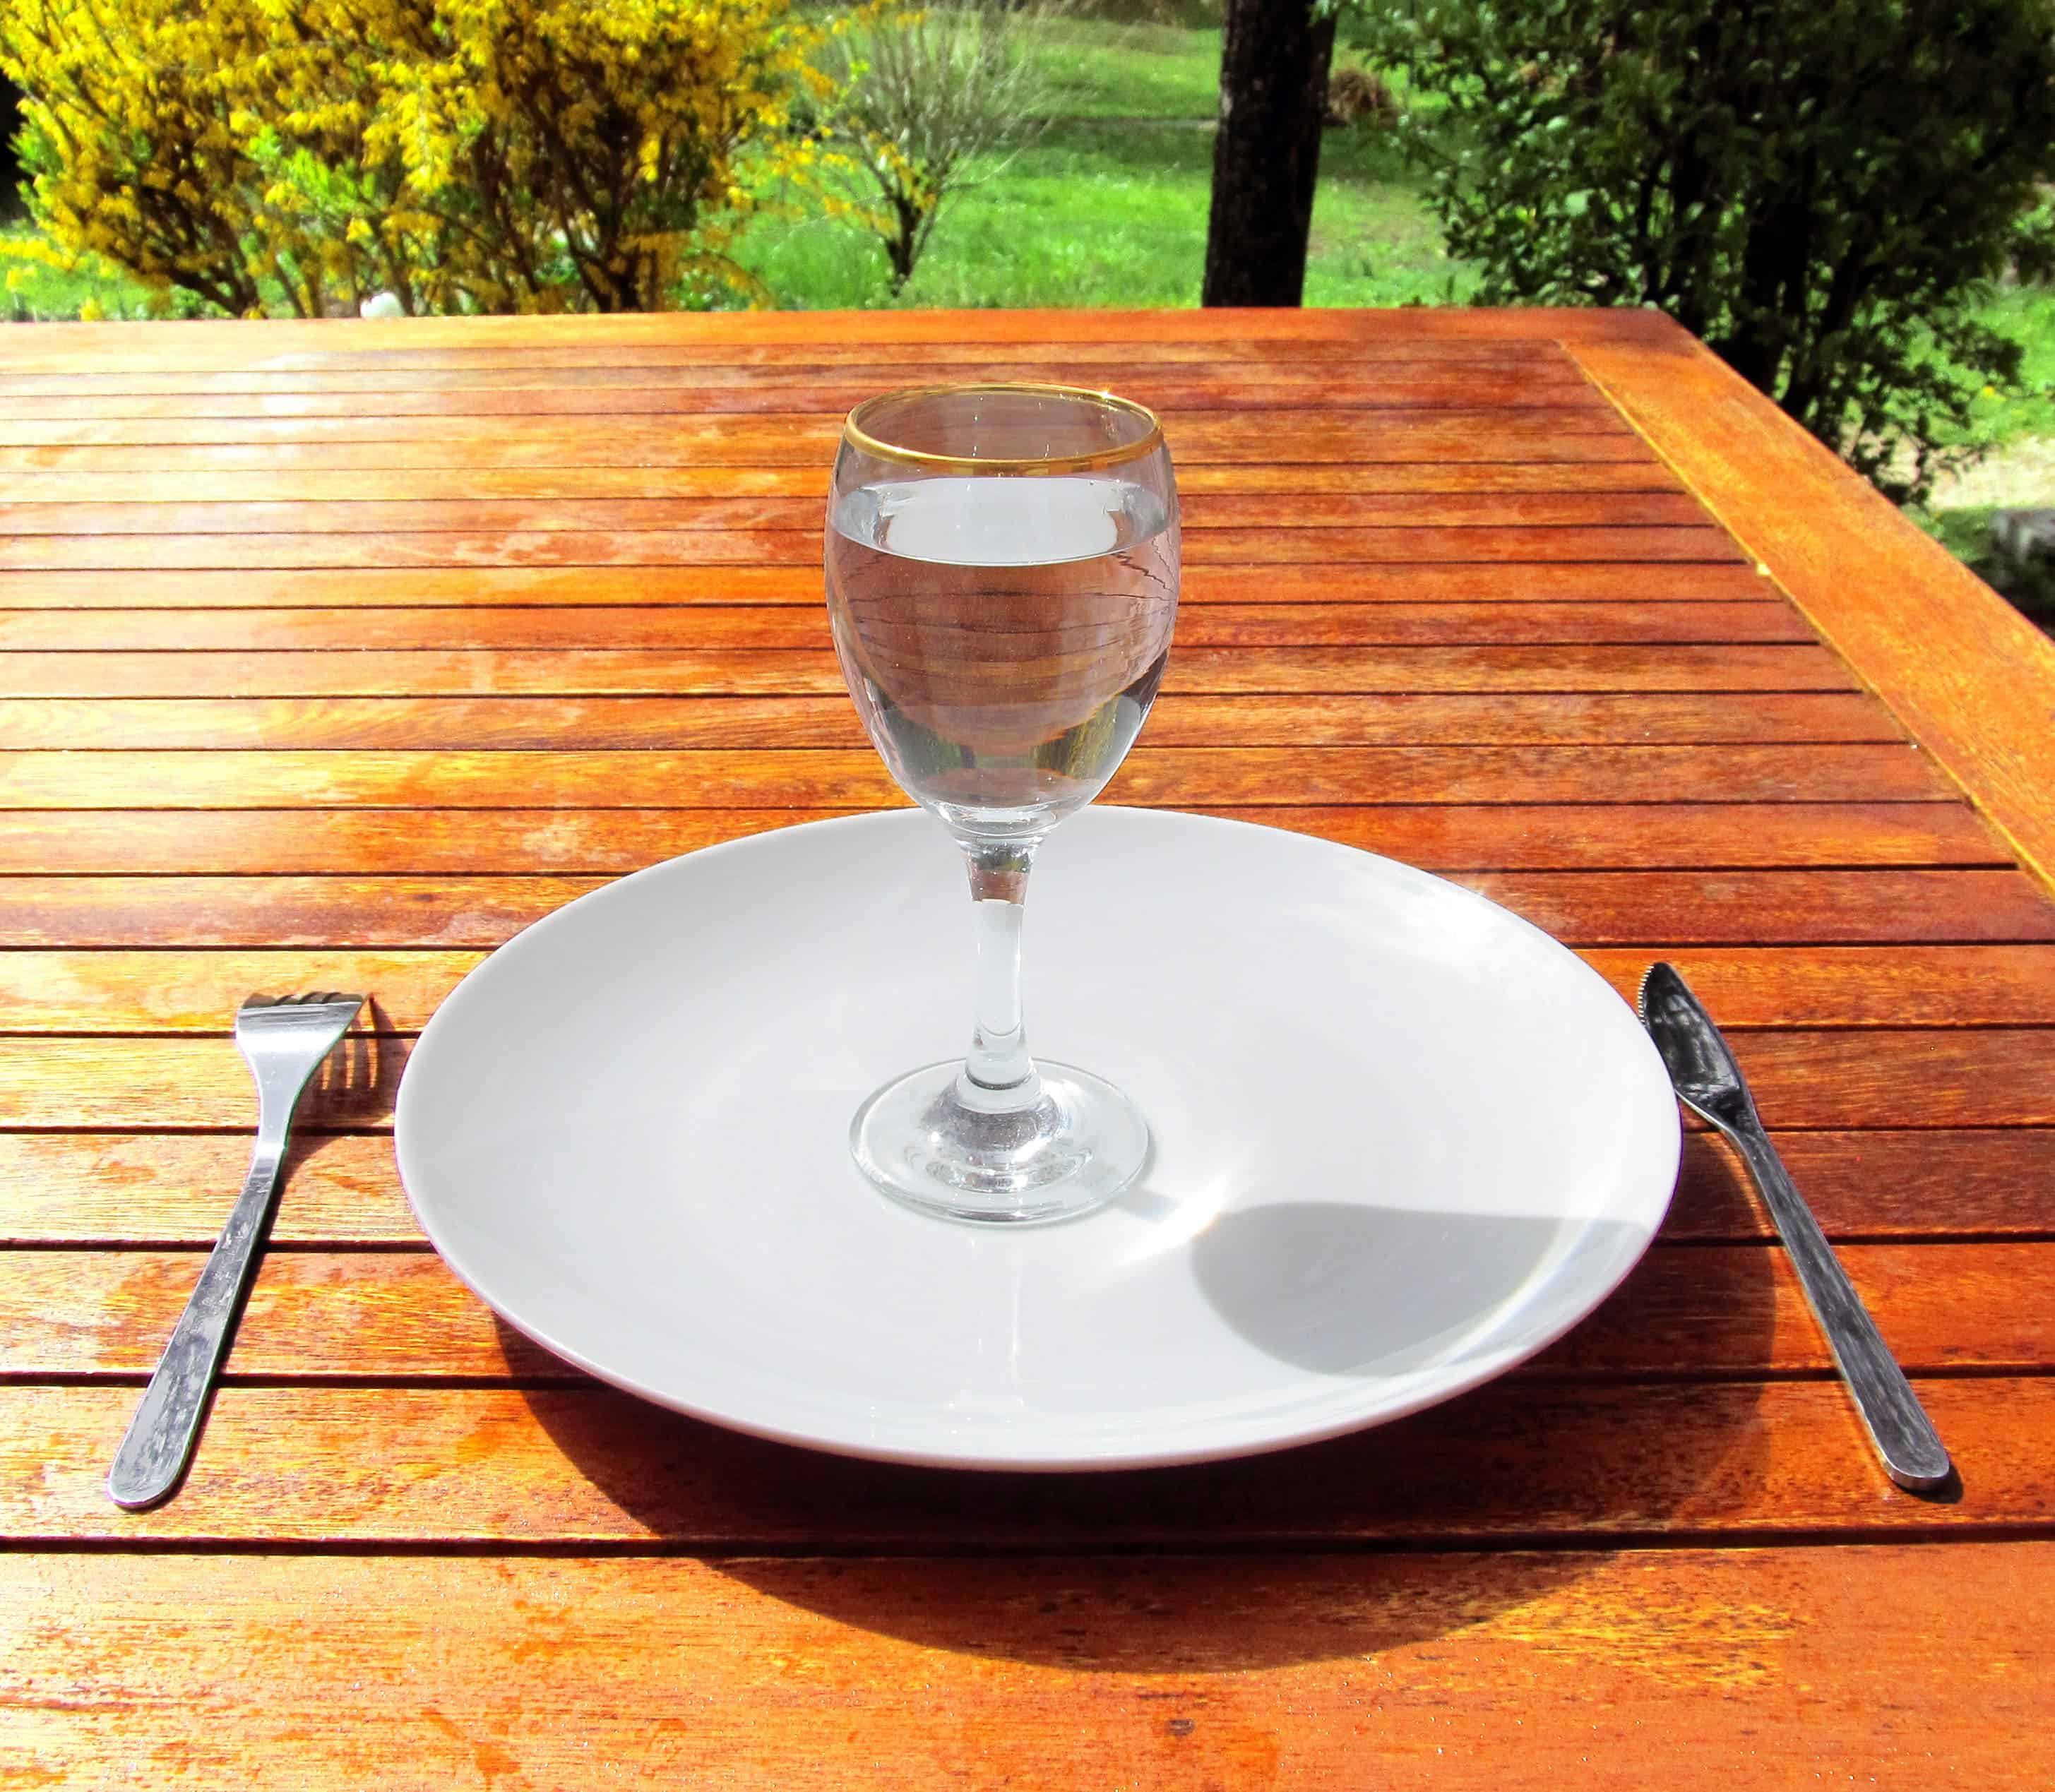 What's intermittent fasting? The science behind it